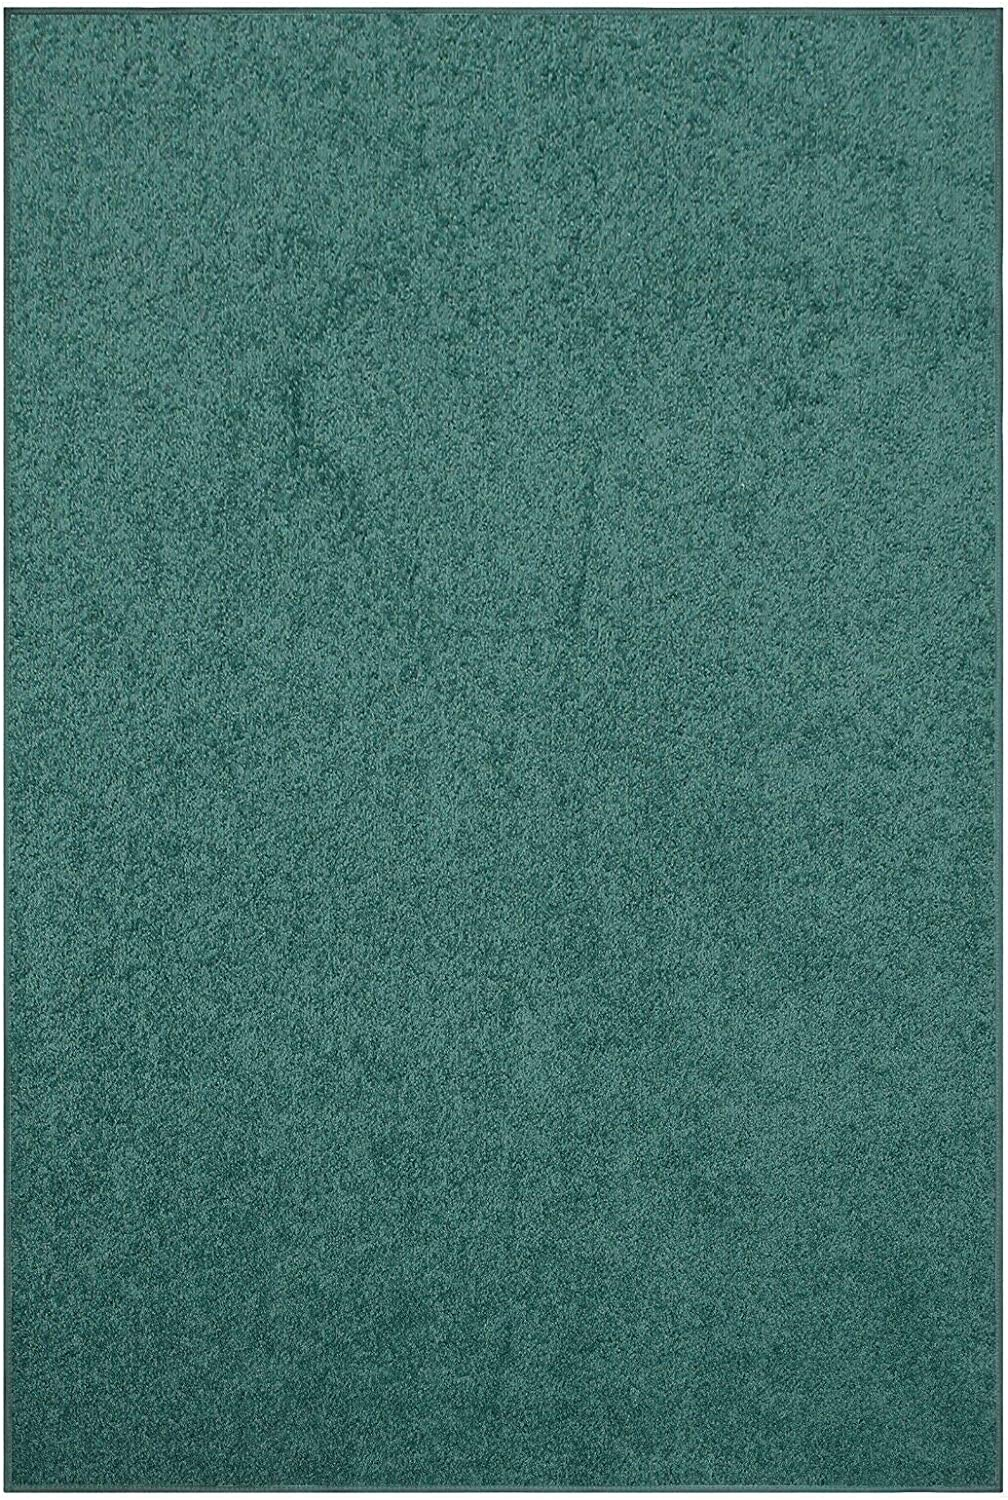 Modern Plush Solid 新作アイテム毎日更新 Color Rug - Teal 2' 新色 Frien 6' Kids and Pet x